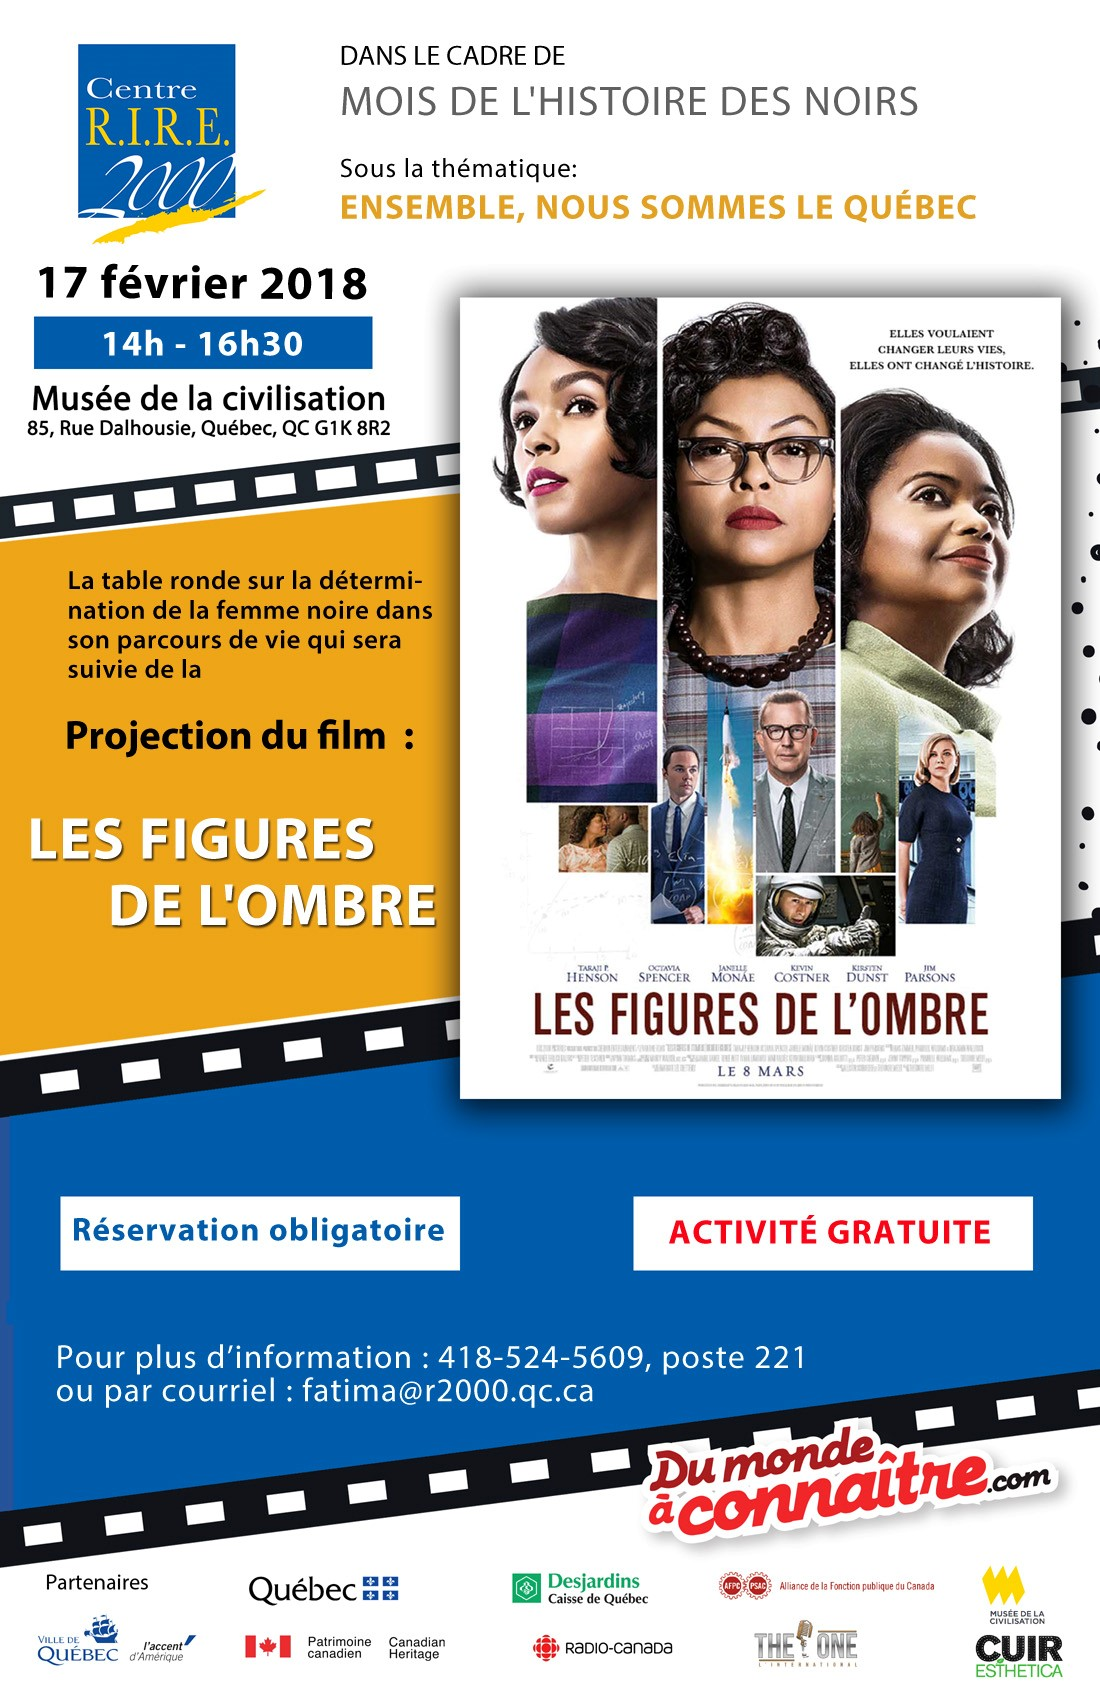 Projection du film : LES FIGURES DE L'OMBRE